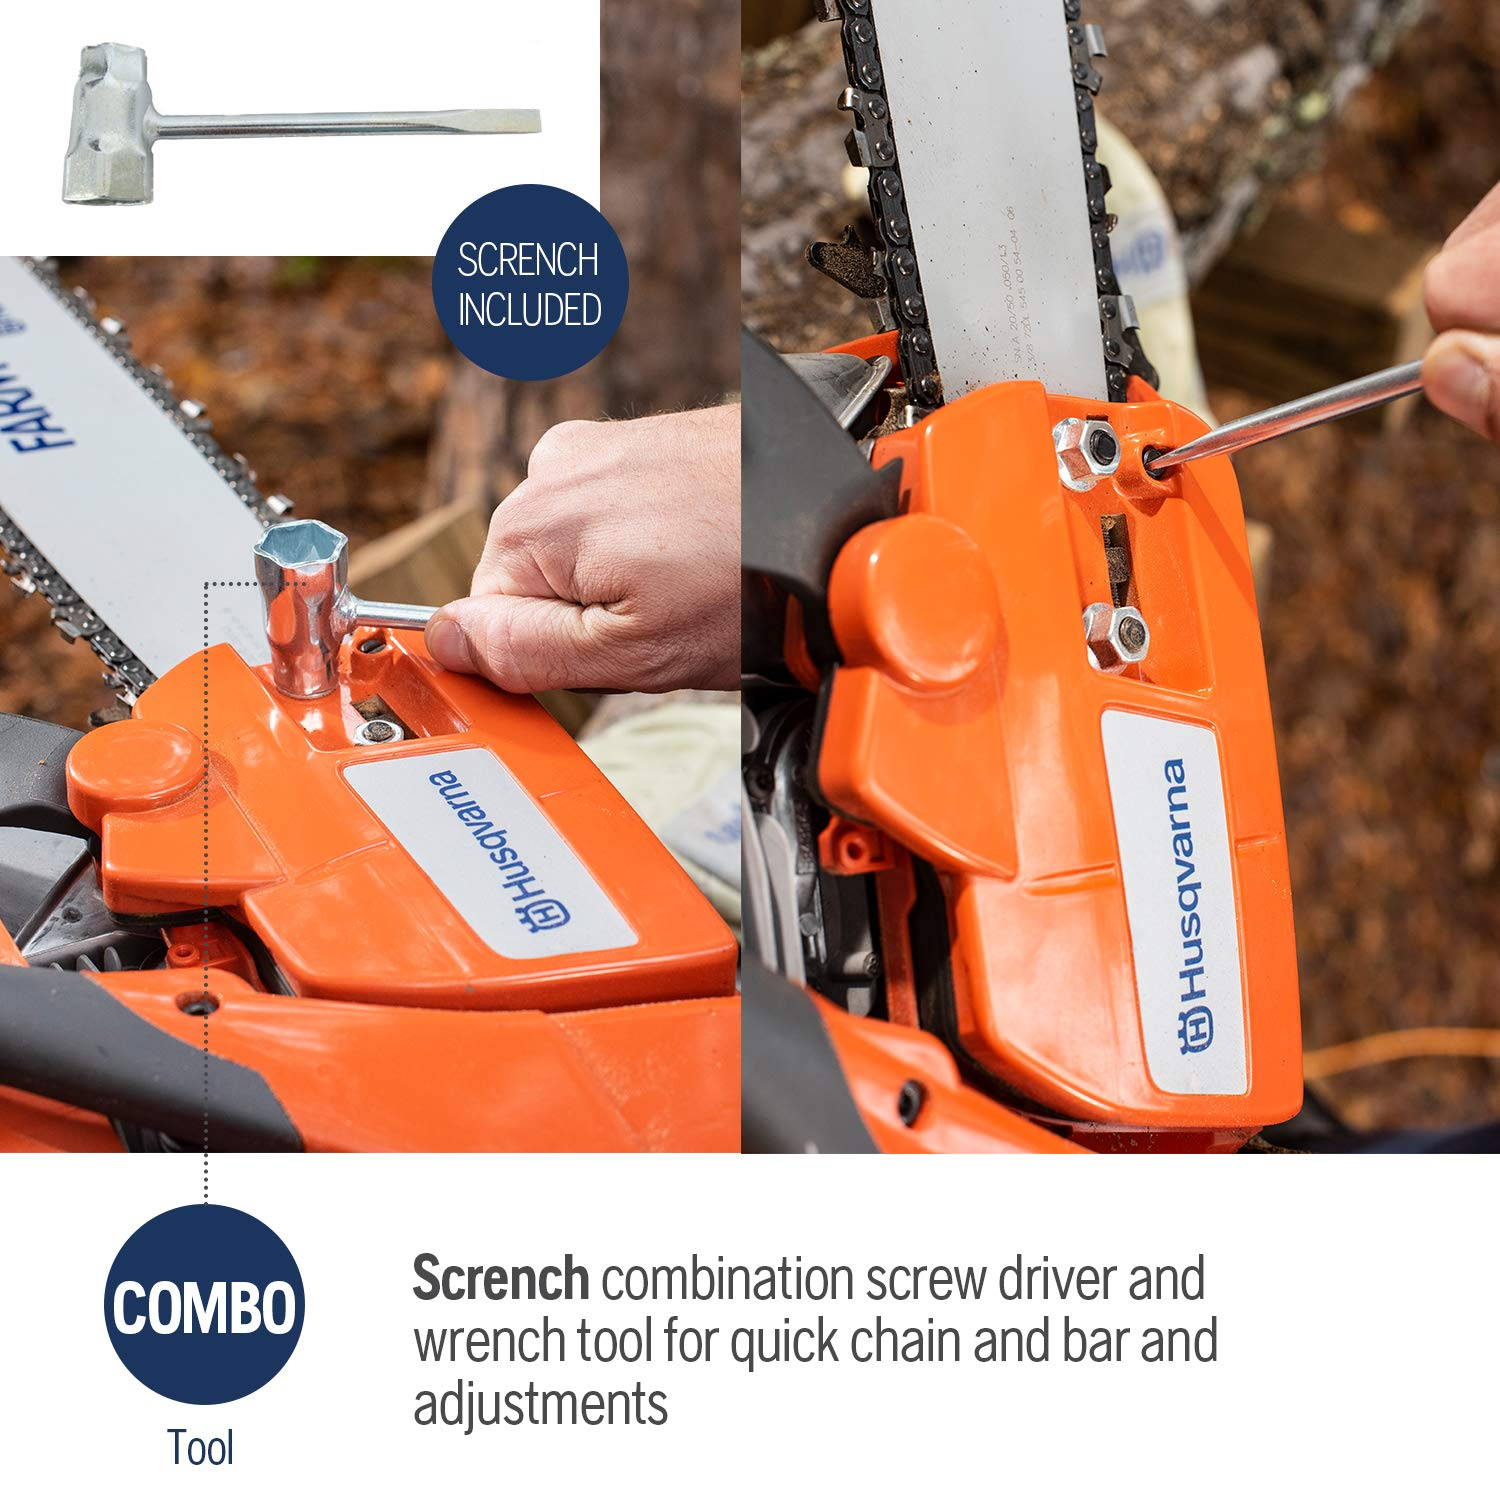 Husqvarna 460 Rancher Chainsaws product image 4